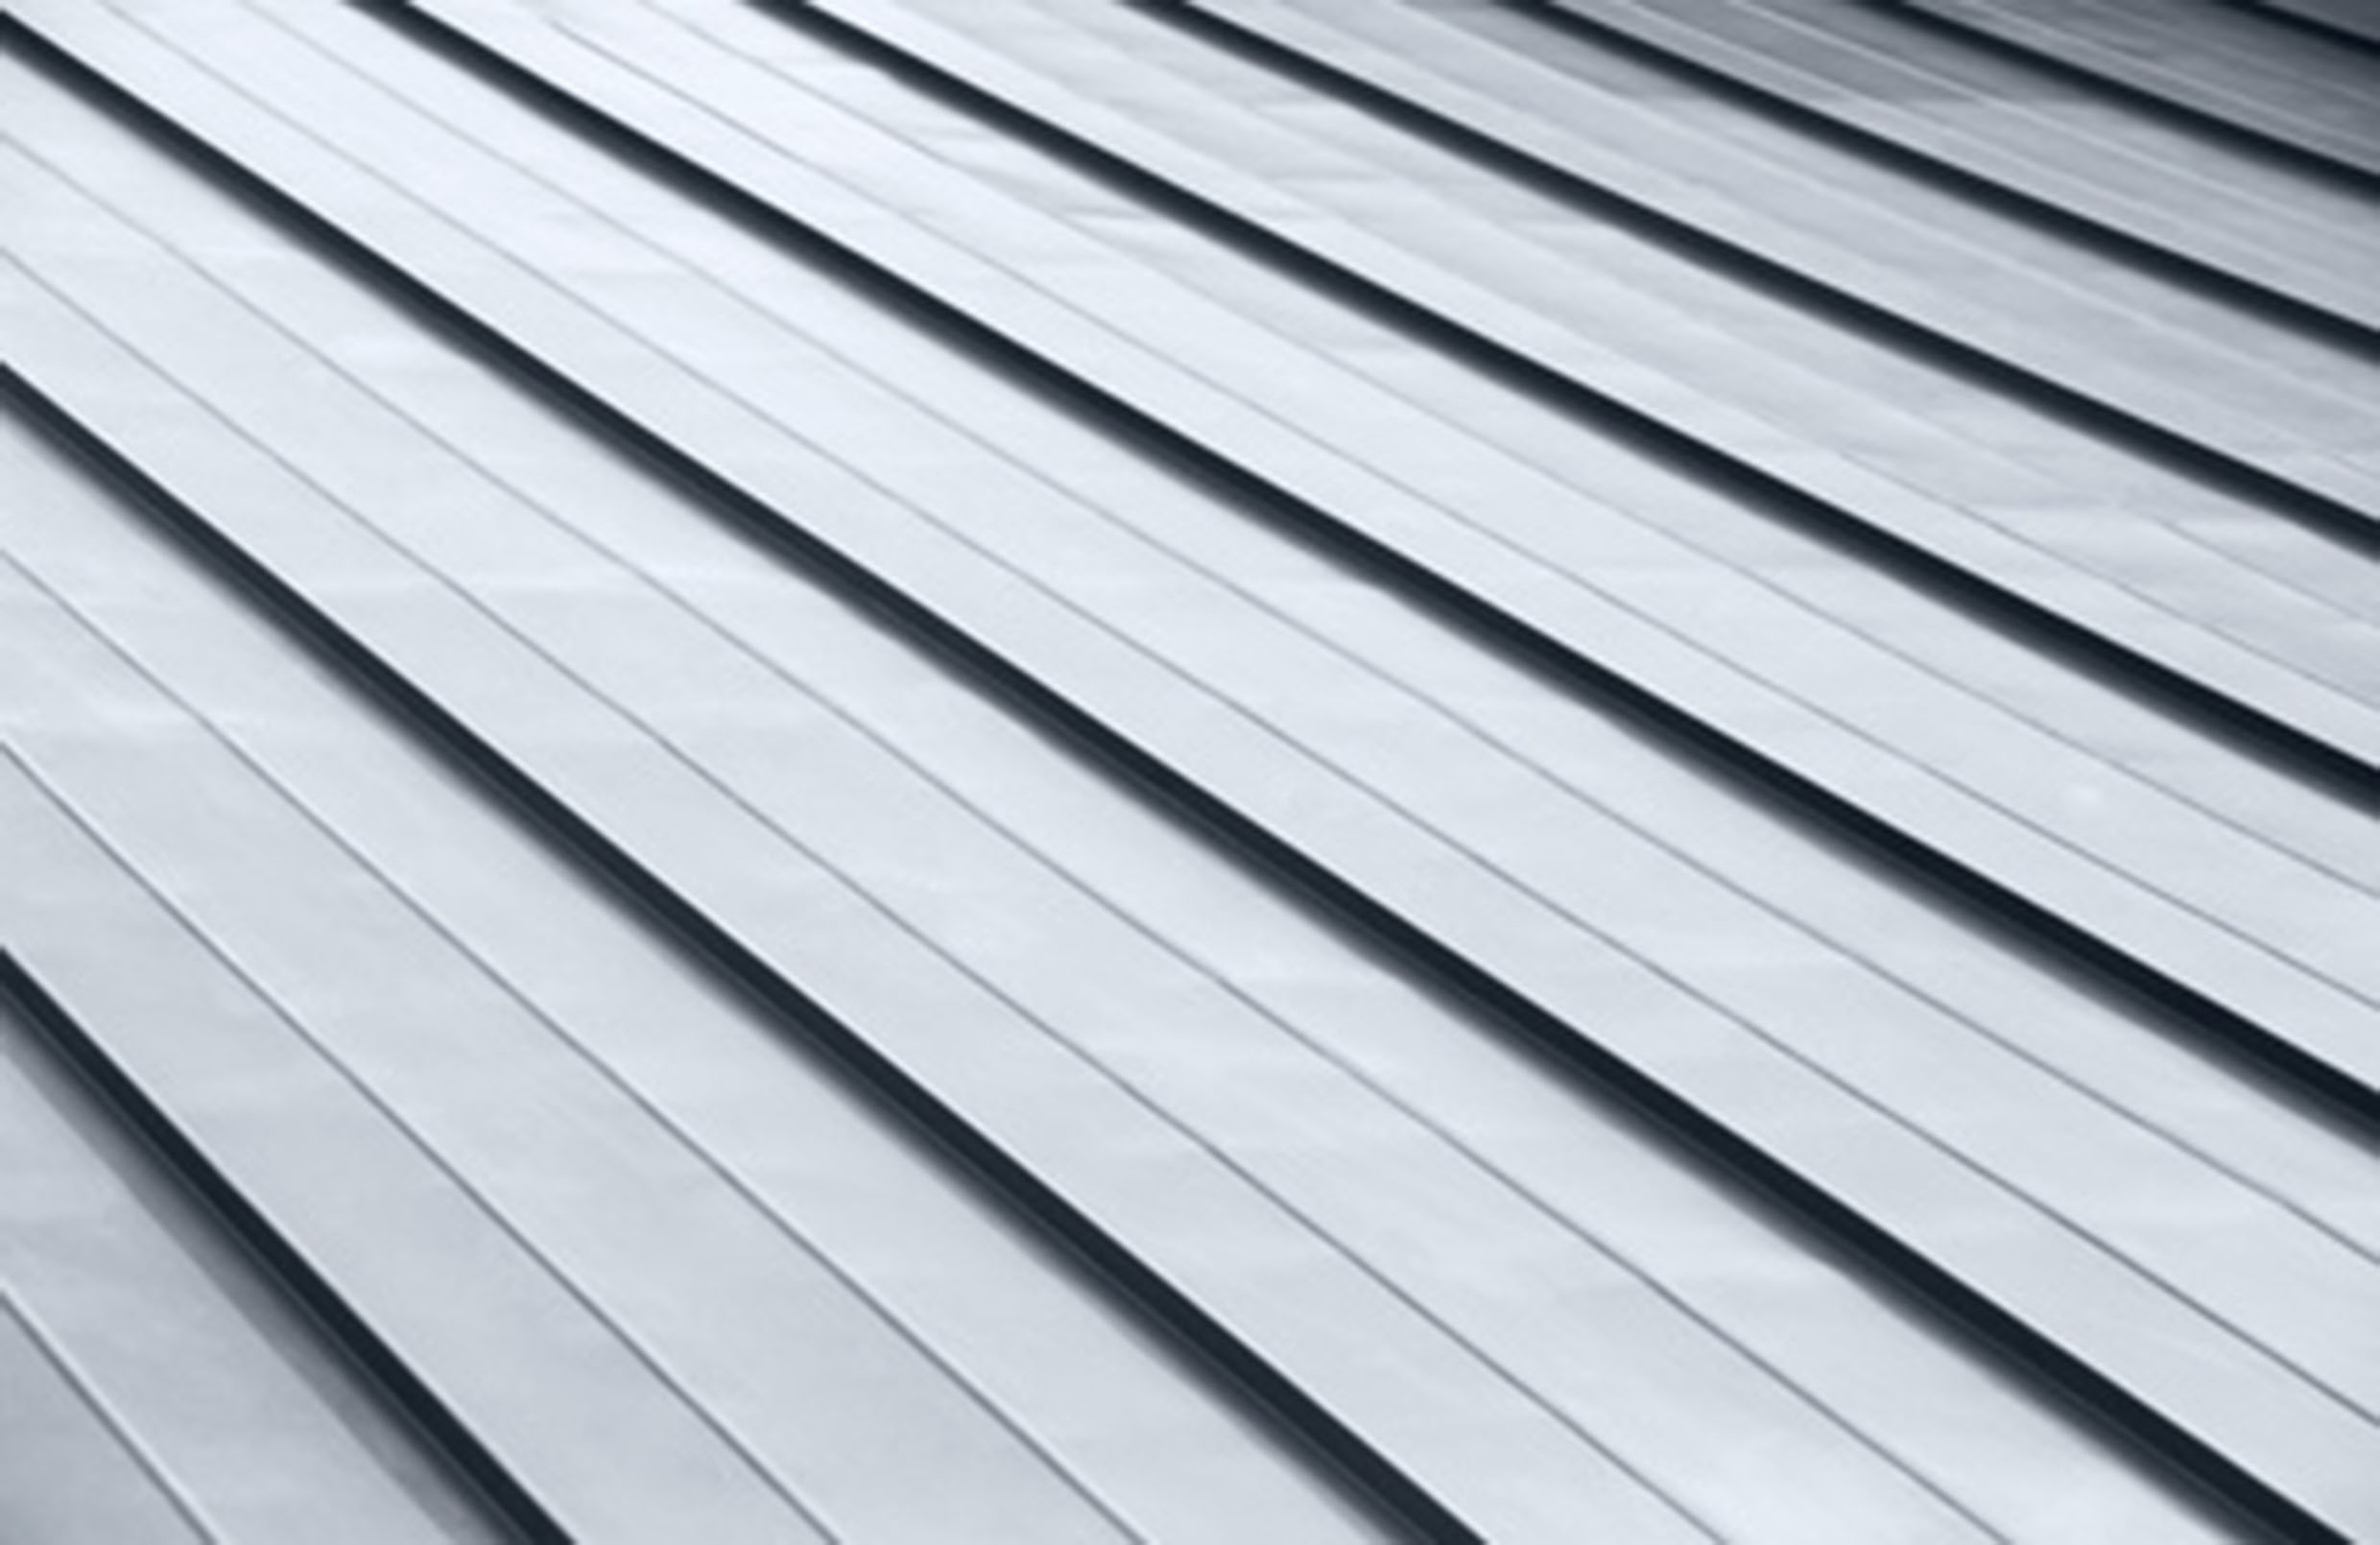 residential-metal-roof-silver-side.jpg